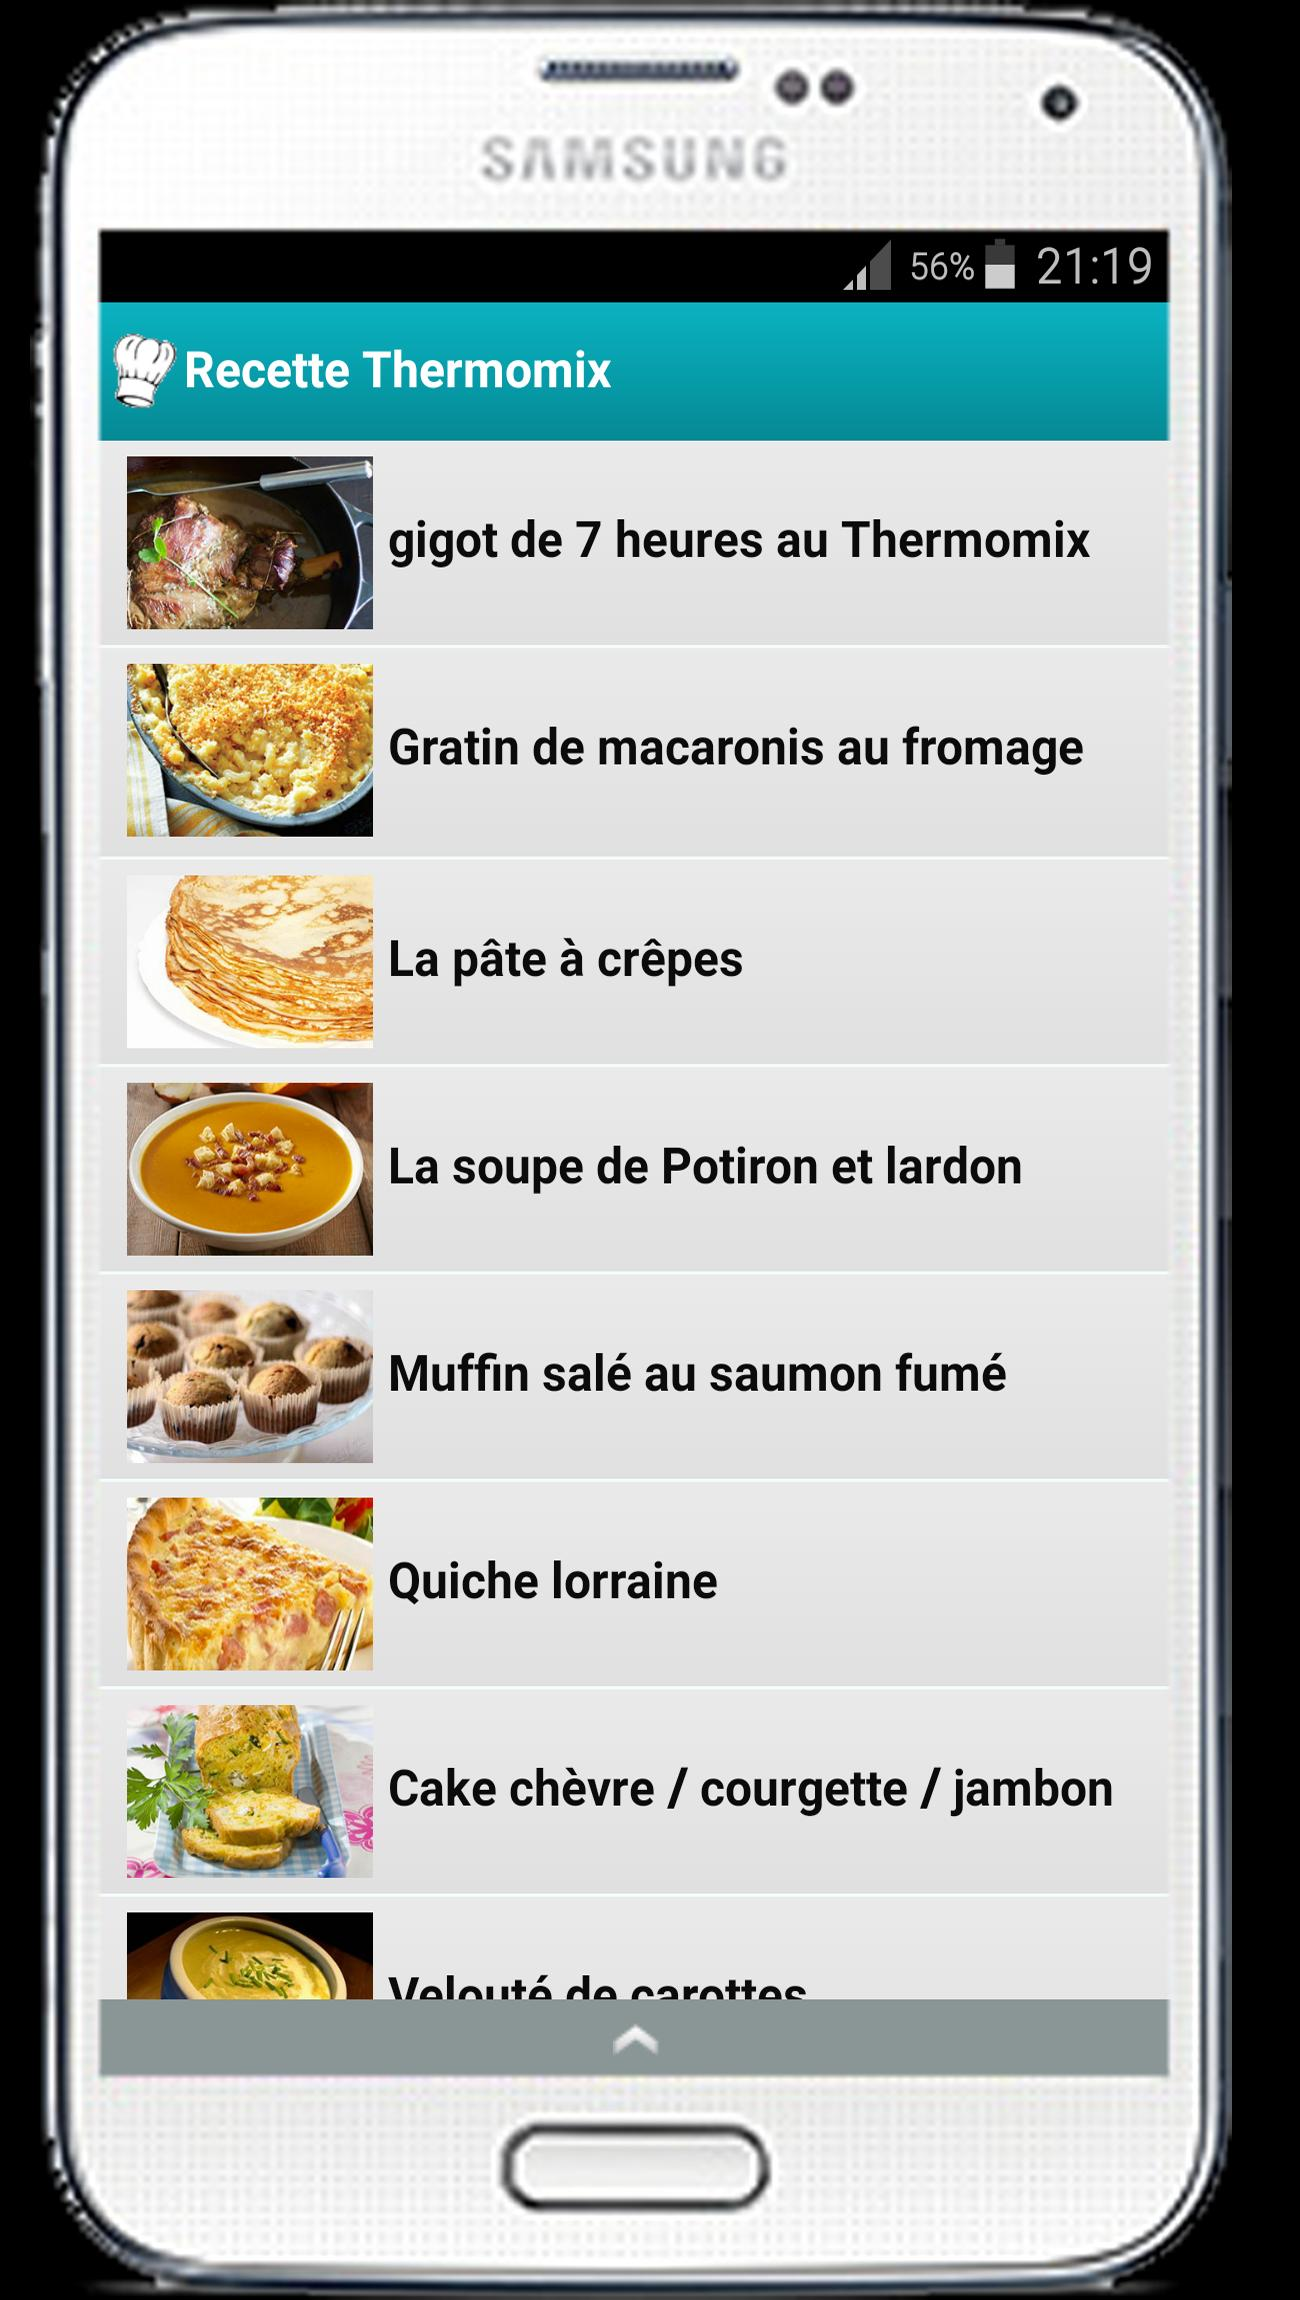 Repas Thermomix Entre Amis recette thermomix facile et rapide for android - apk download